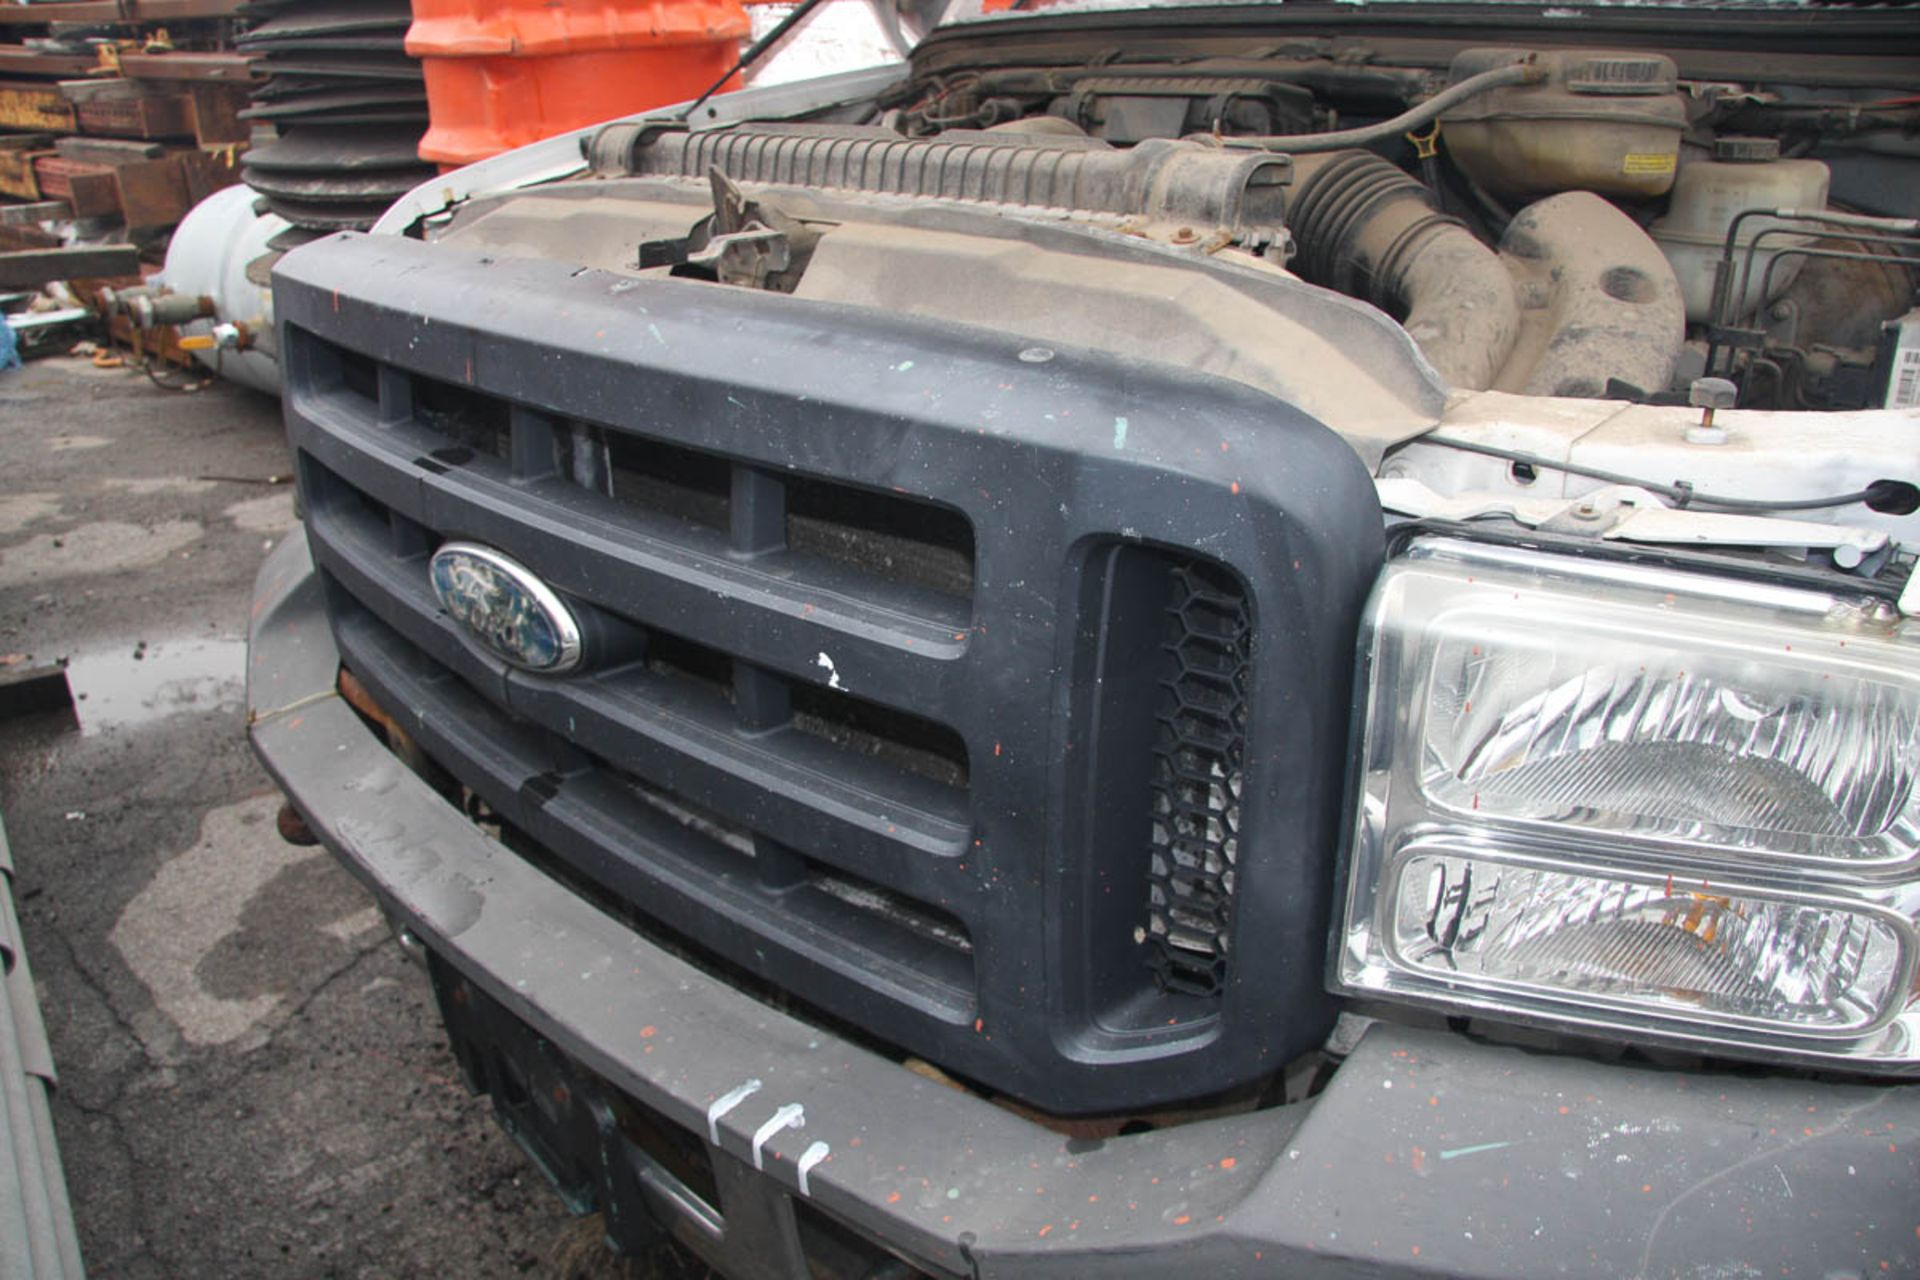 2006 FORD F-250 XL SUPER DUTY PICKUP TRUCK, 4-WHEEL DRIVE, AUTOMATIC, APPROXIMATELY 95,601 MILES, - Image 4 of 11